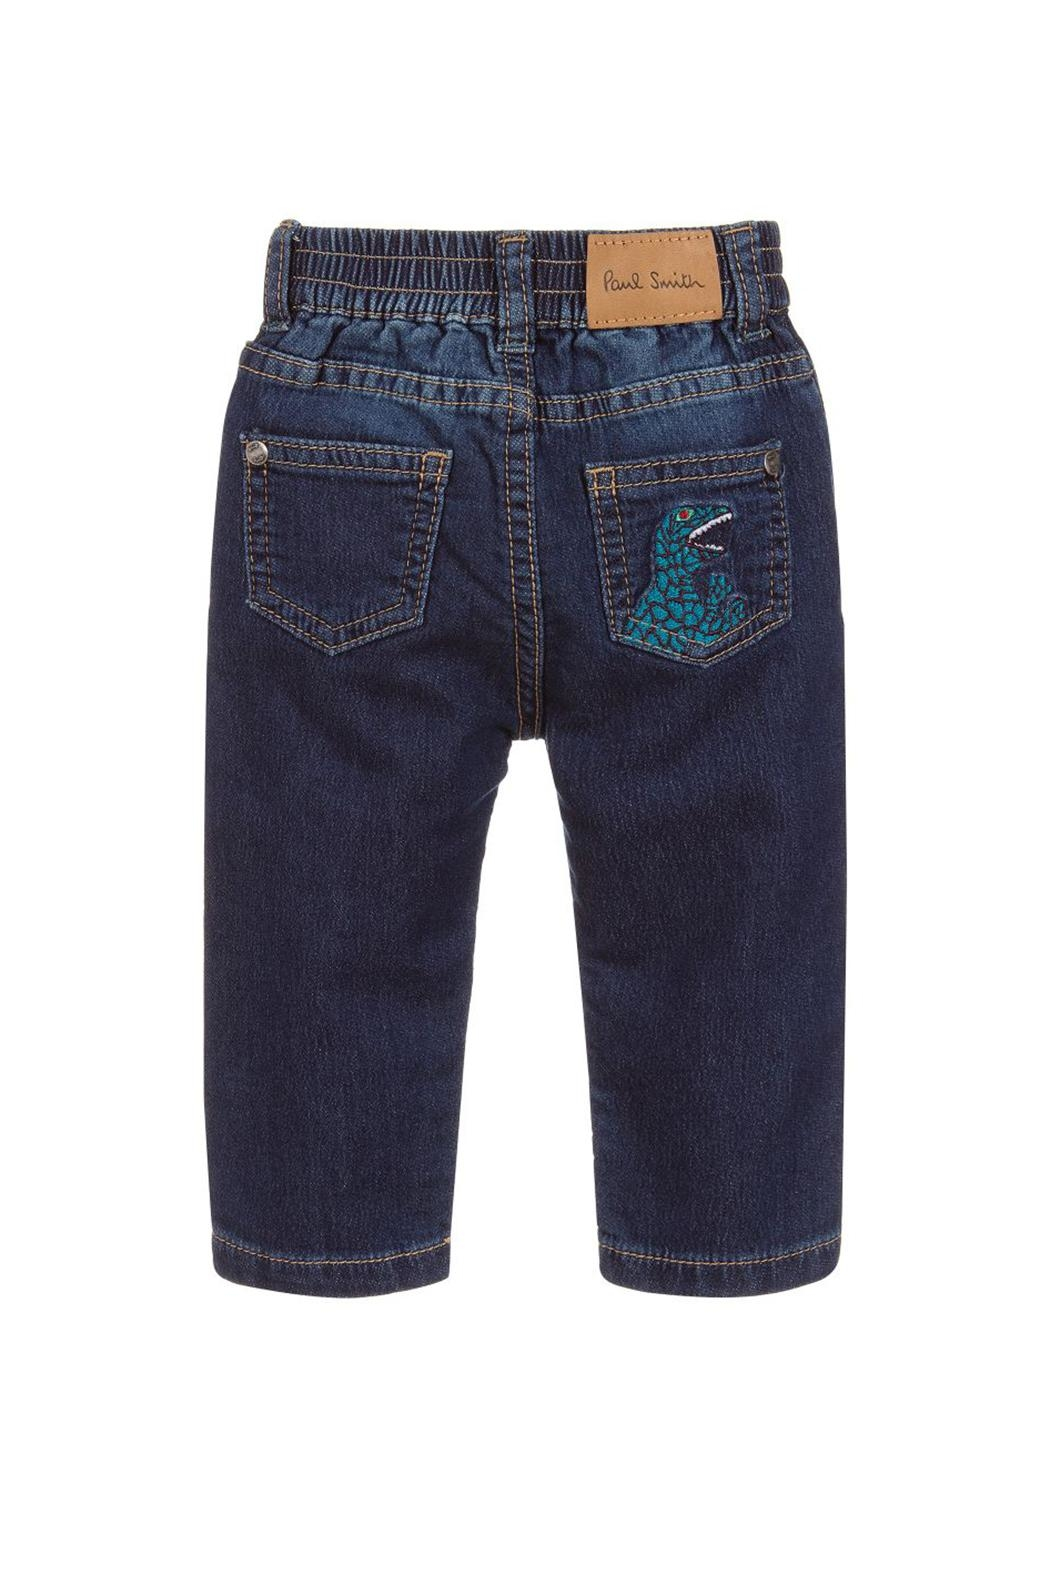 Paul Smith Junior Blue-Denim 'Tiziano' Trousers - Side Cropped Image